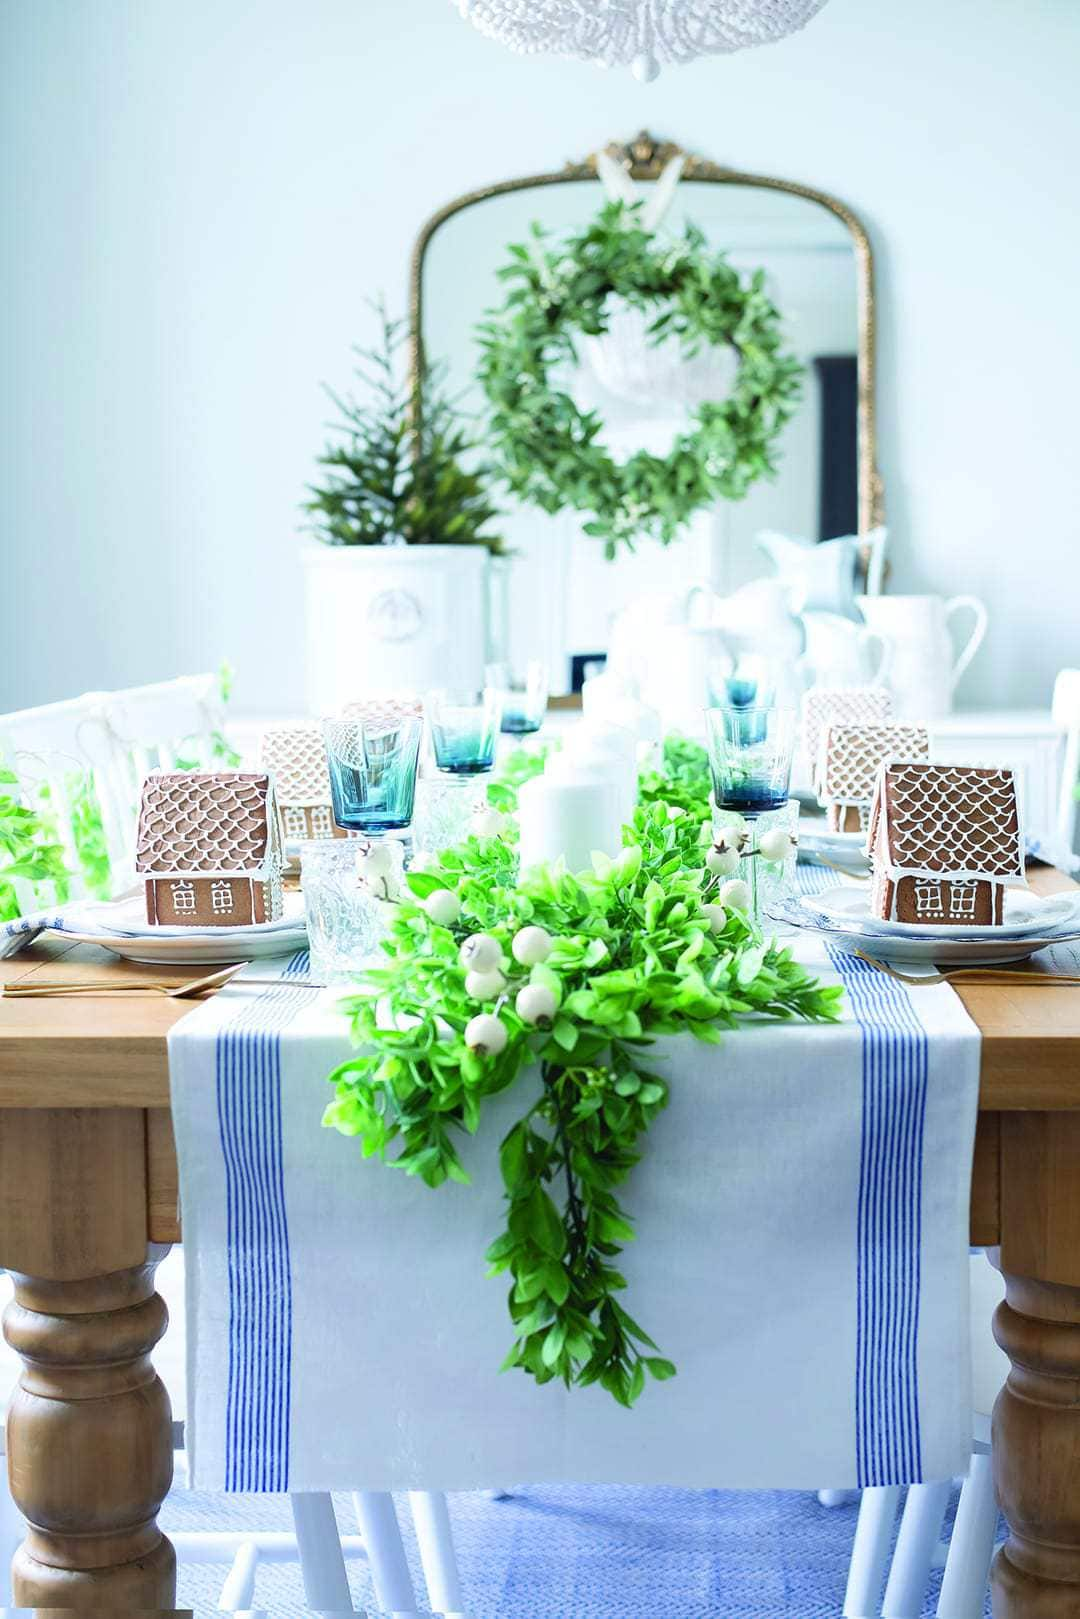 Faux garland swags the seats to create a festive seating arrangement.